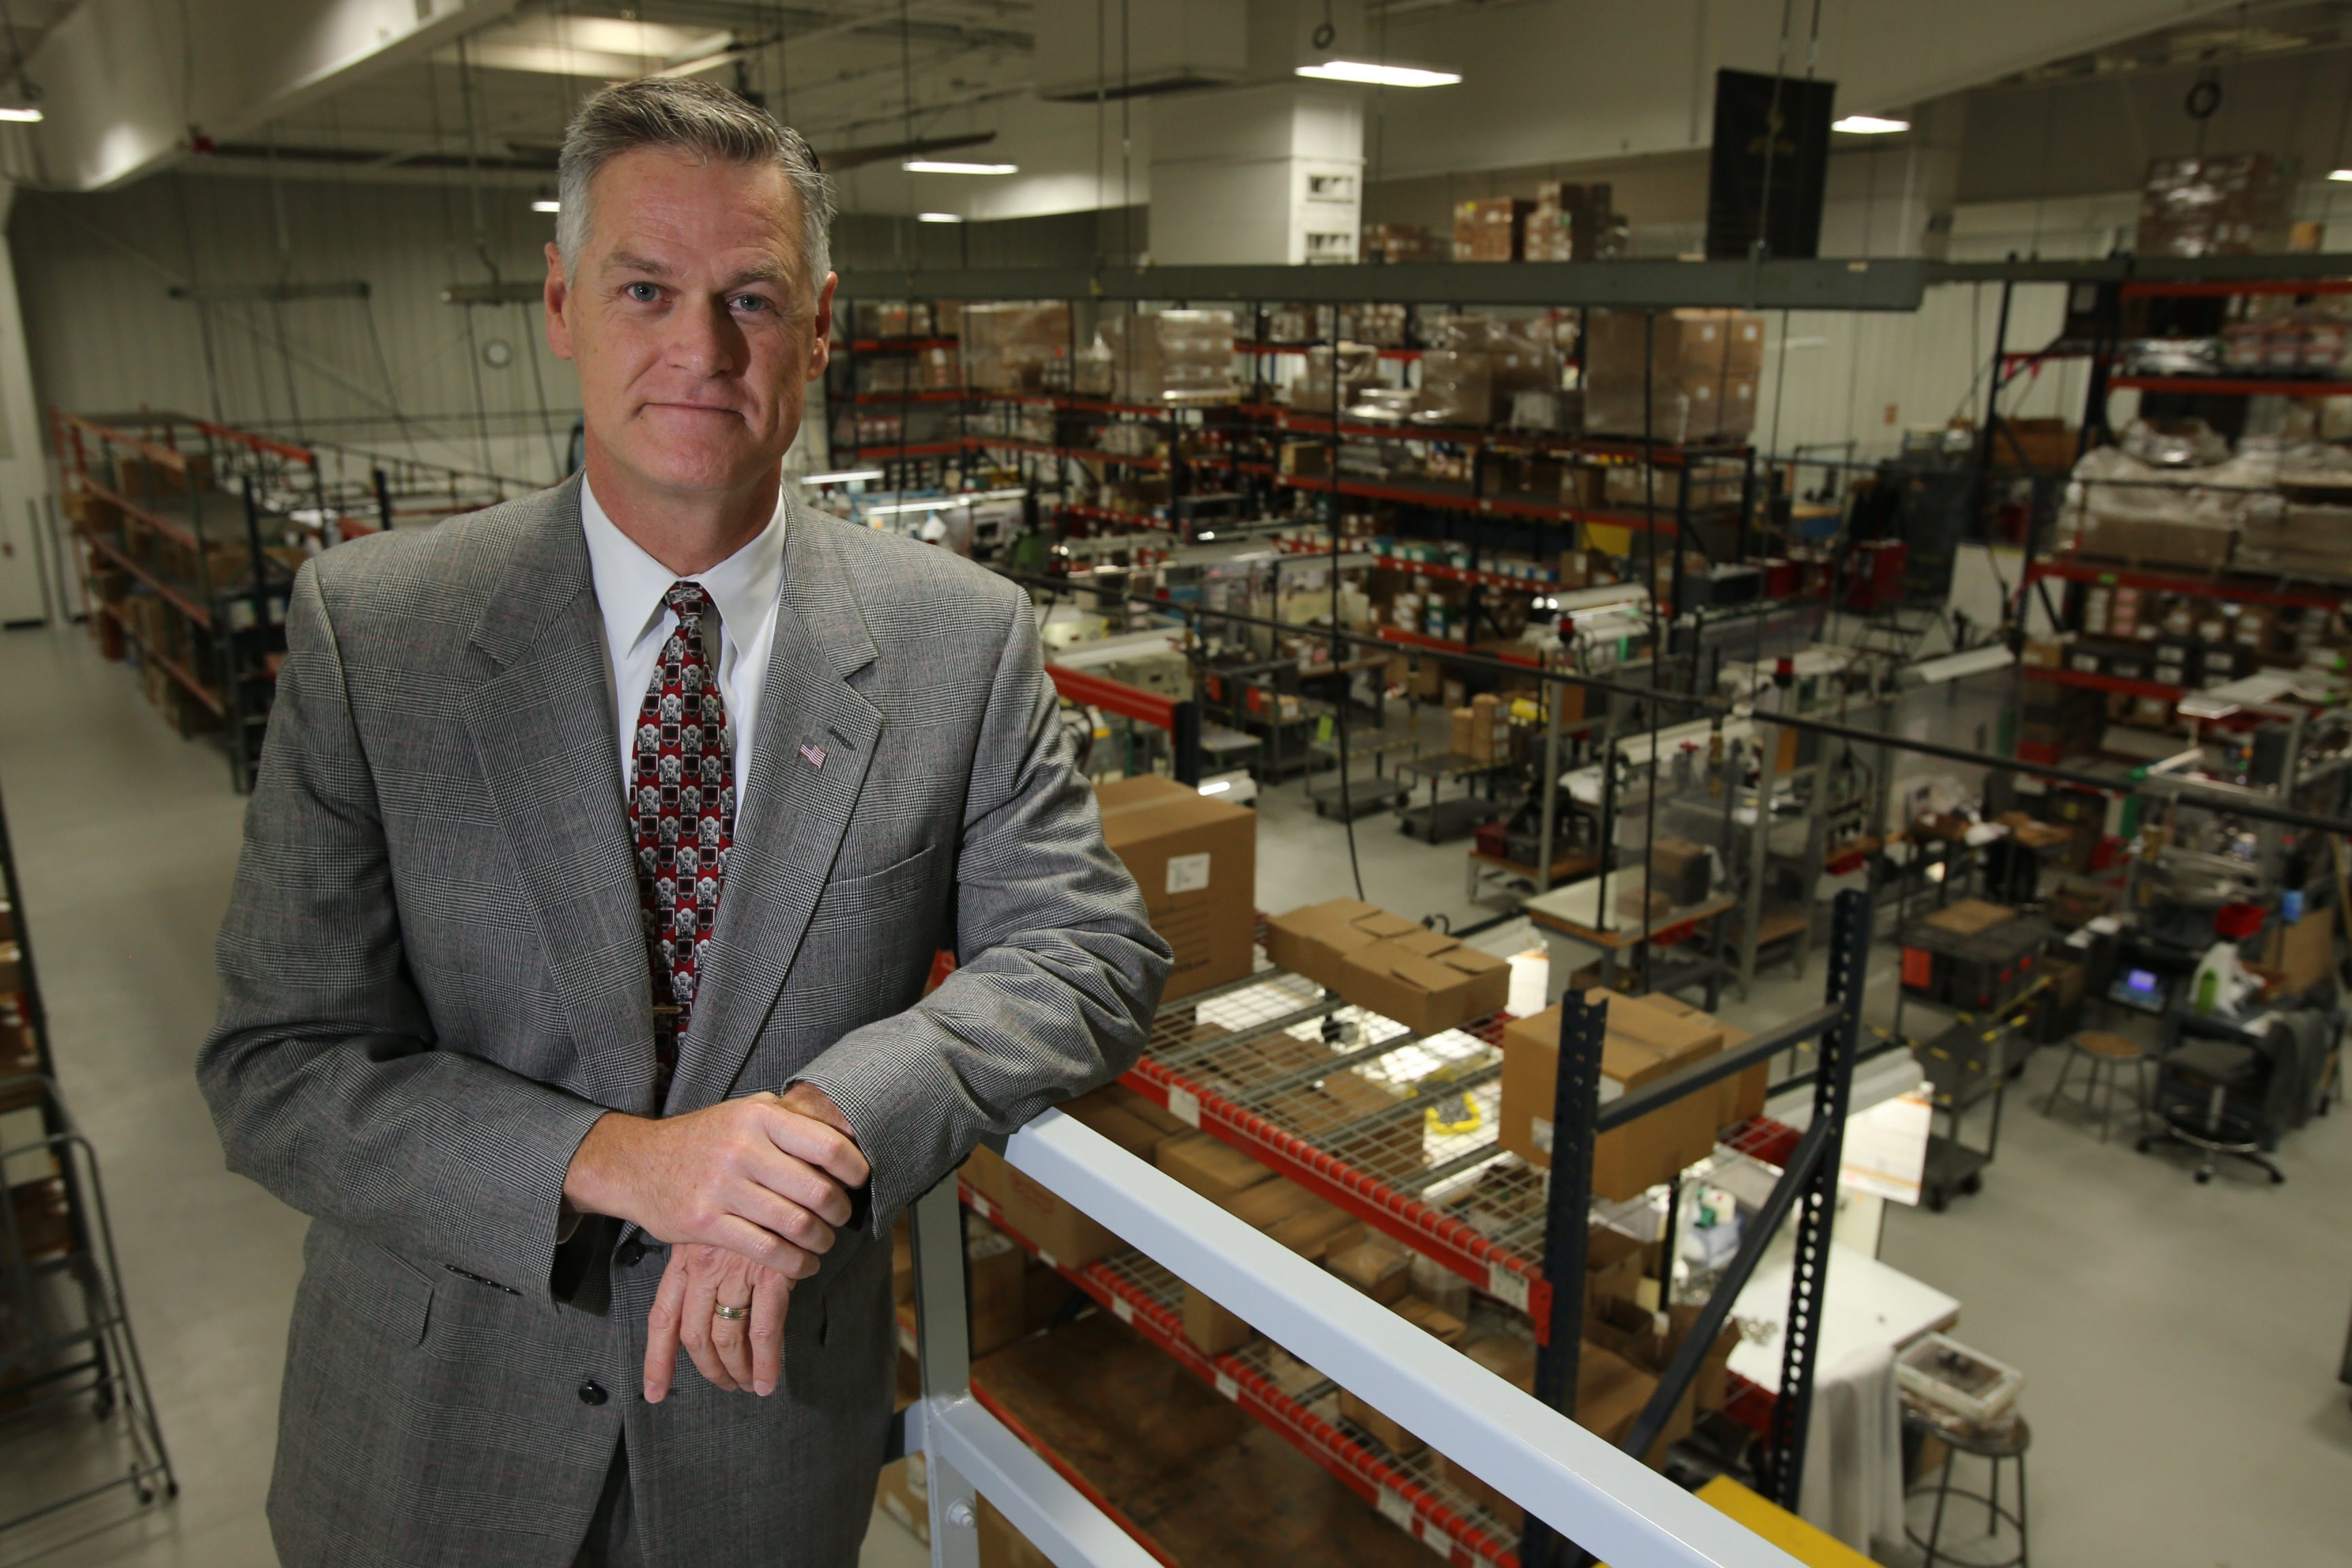 Michael Rayhill, president of Jiffy-Tite, stands in an assembly area at the company's Lancaster plant. (News file photo)